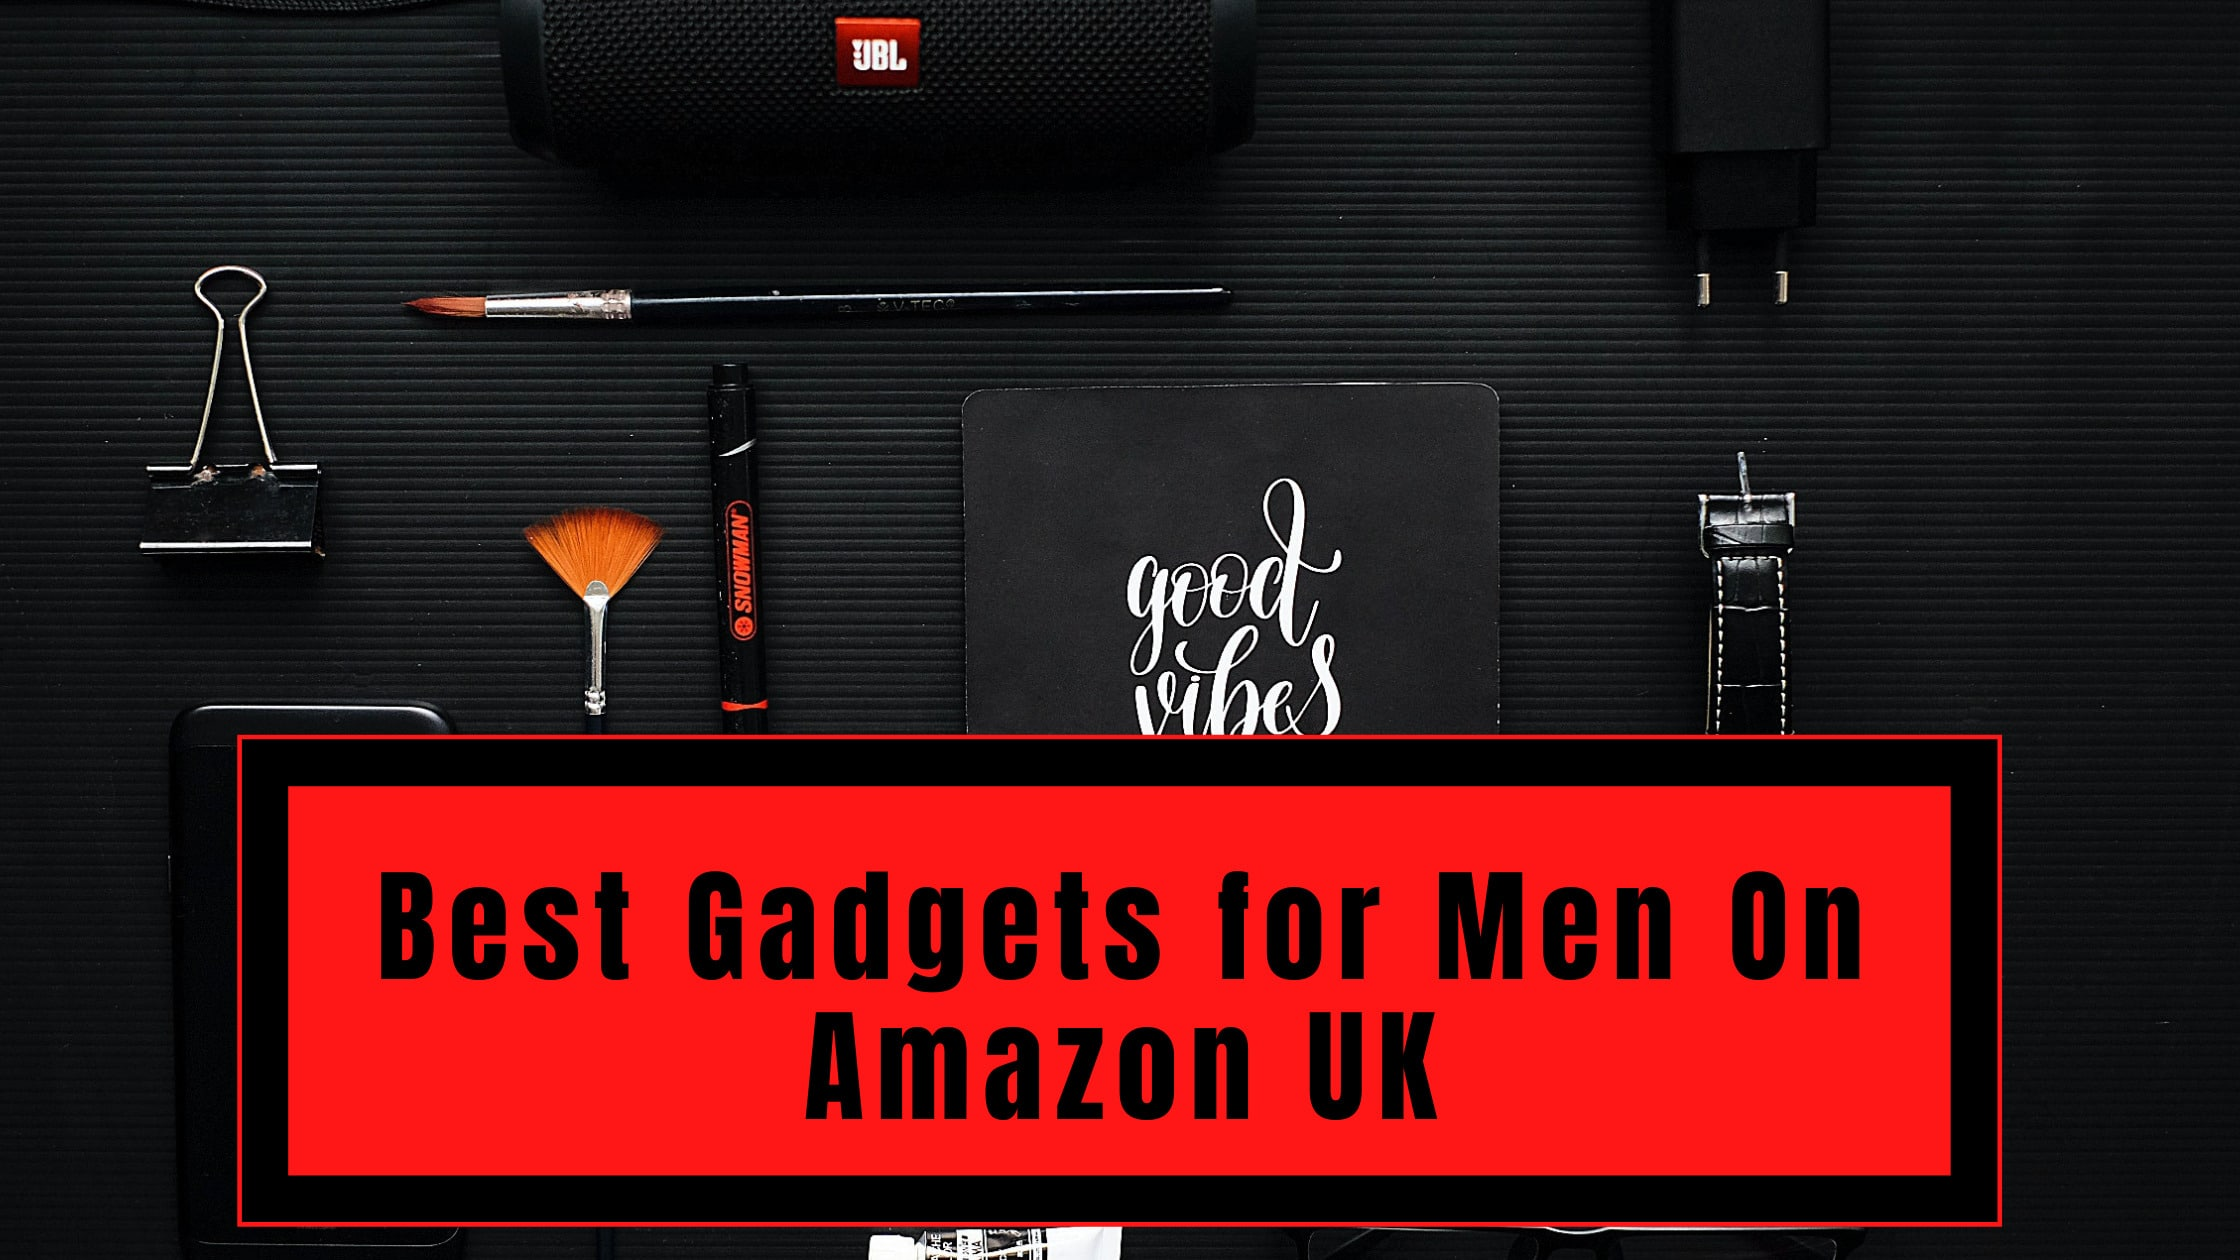 Best Gadgets for Men On Amazon UK